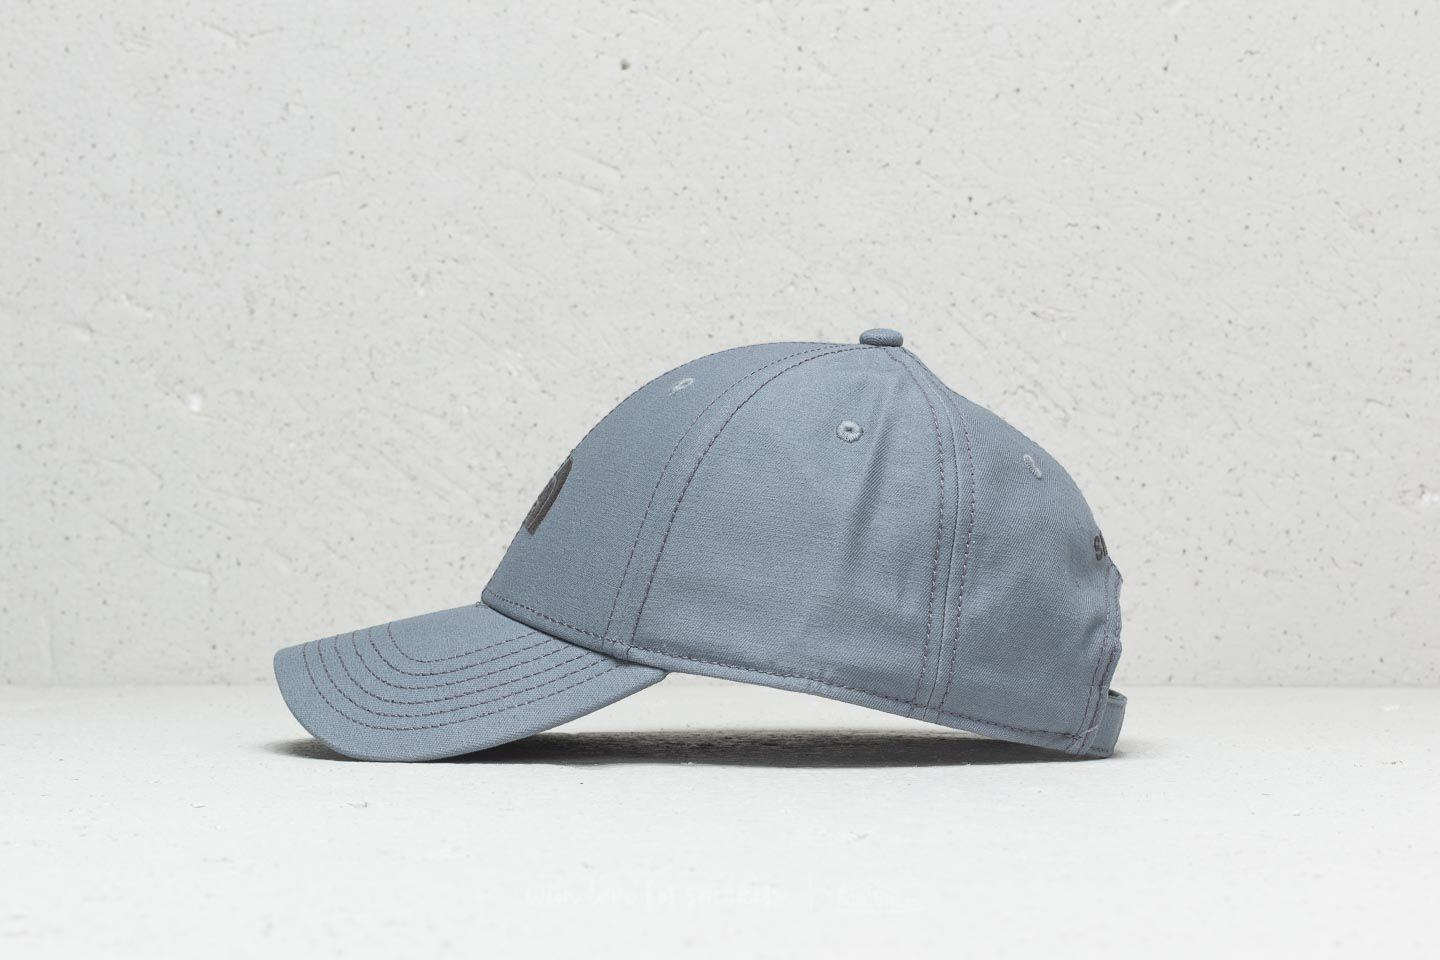 Lyst - Footshop The North Face 66 Classic Hat Mid Grey in Gray for Men d45bb5af7f02